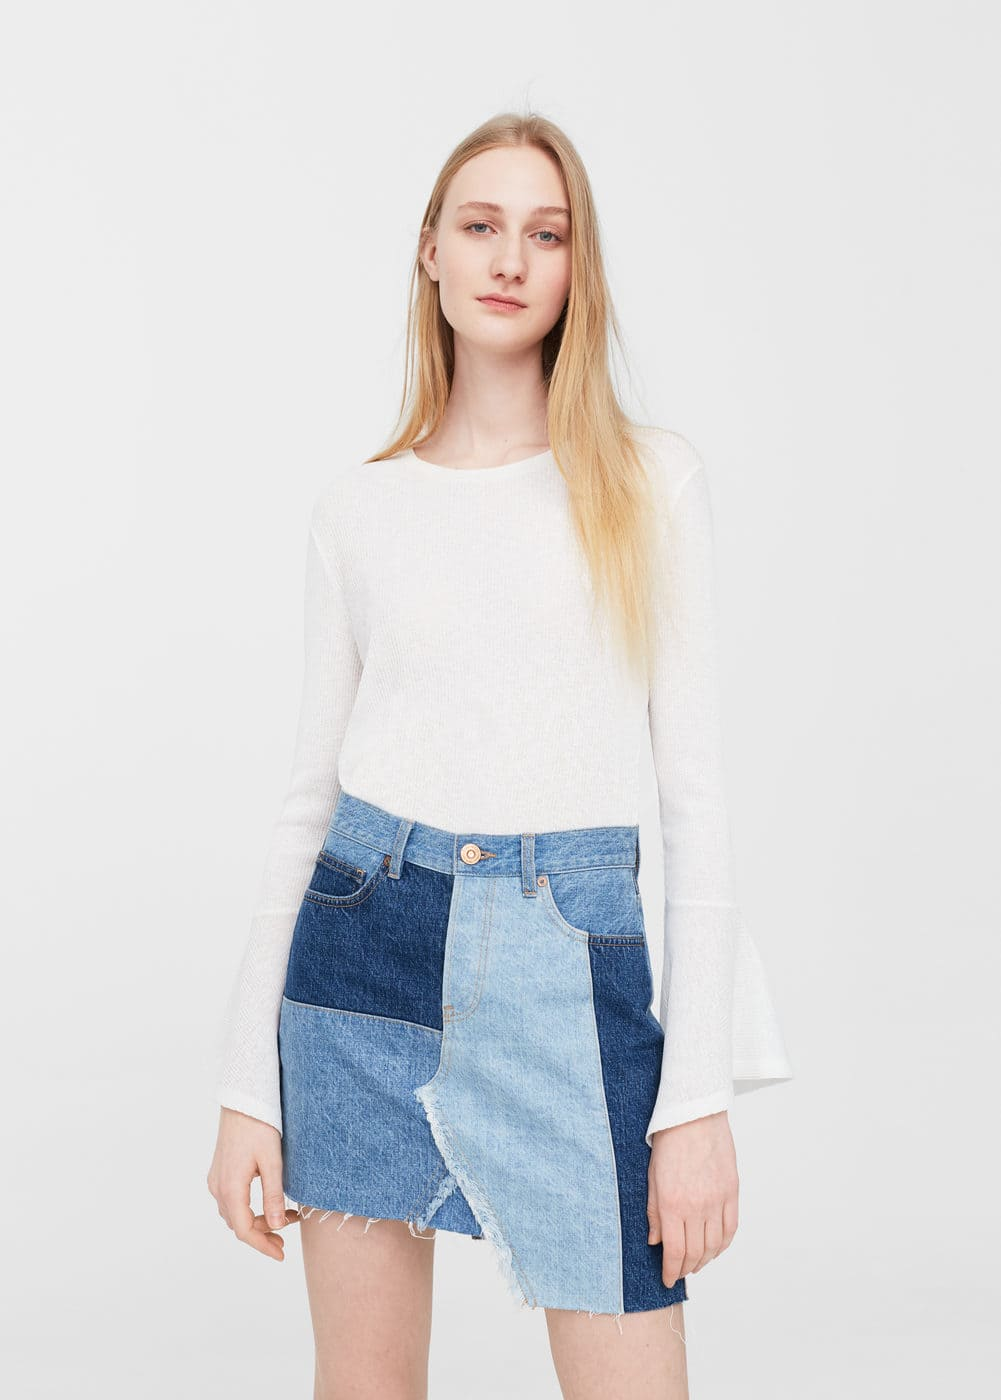 Pildiotsingu Triple wash denim skirt tulemus